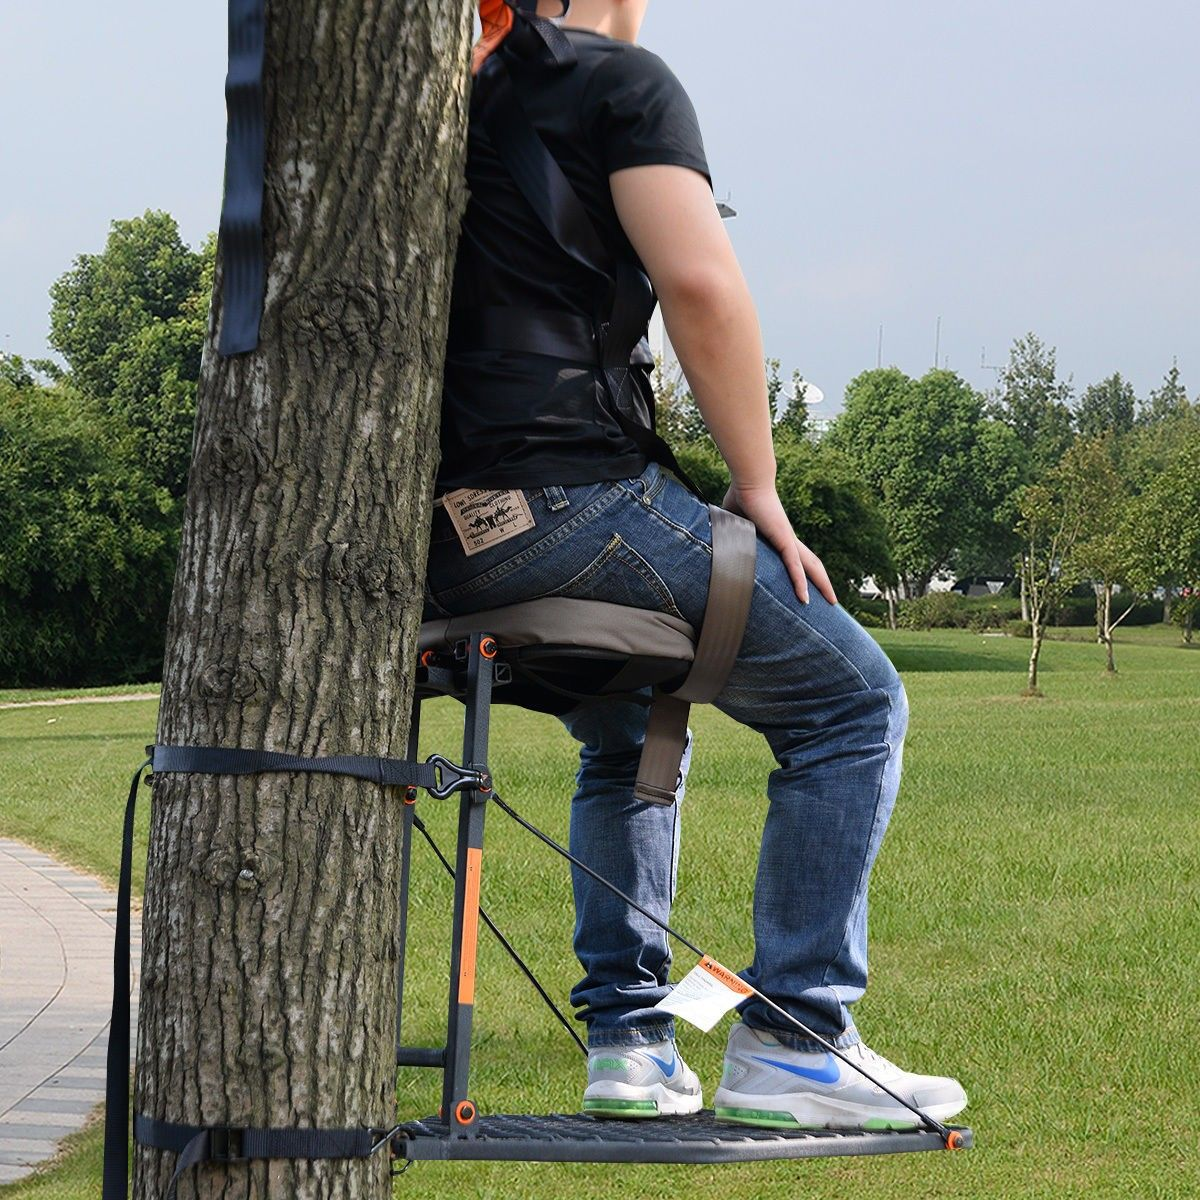 Hang On TreeStand Seat Cushion Safety Harness Hunt Climber